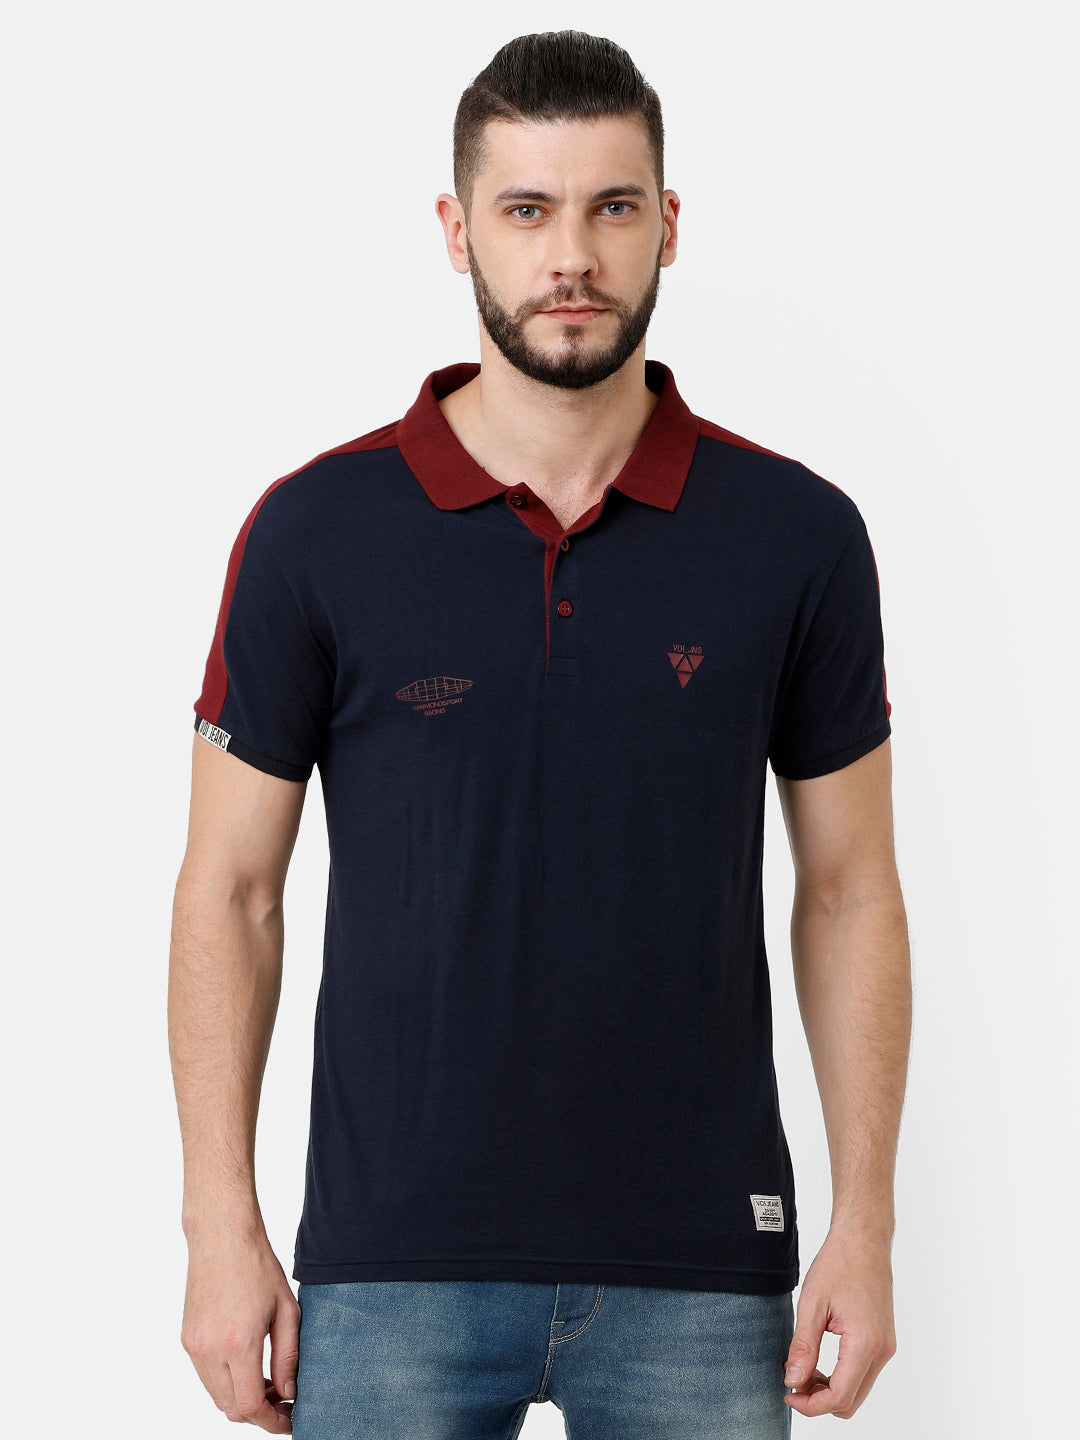 Navy blue and Red collar T-shirt